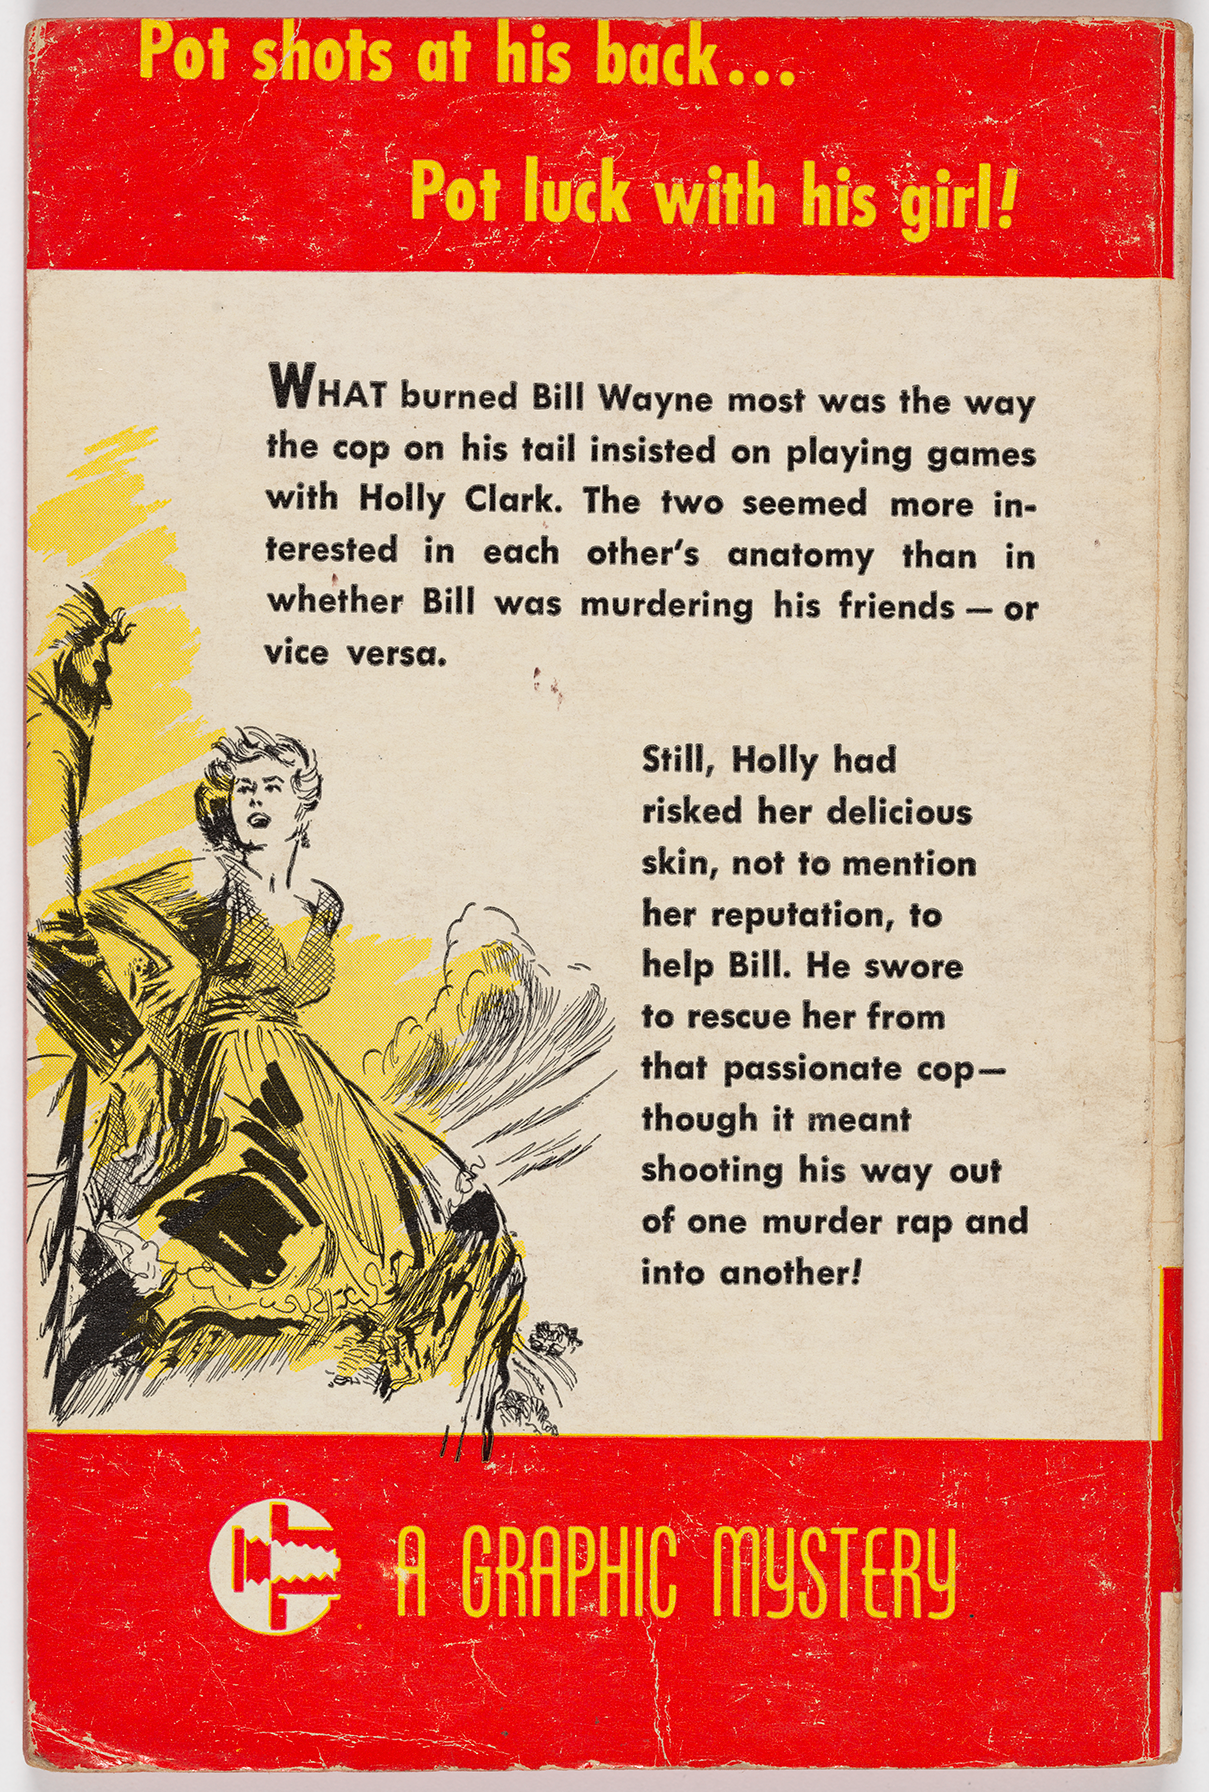 "The back cover begins with the tagline, ""Pot shots at his back … Pot luck with his girl!"" The words ""A Graphic Mystery"" also appear alongside the publisher's insignia. The description of the book is written from the perspective of one of the characters: ""What burned Bill Wayne most was the way the cop on his tail insisted on playing games with Holly Clark. The two seemed more interested in each other's anatomy than in whether Bill was murdering his friends — or vice versa…"" There is also a sketch of a woman voluminous yellow dress, standing in front of a palm tree."